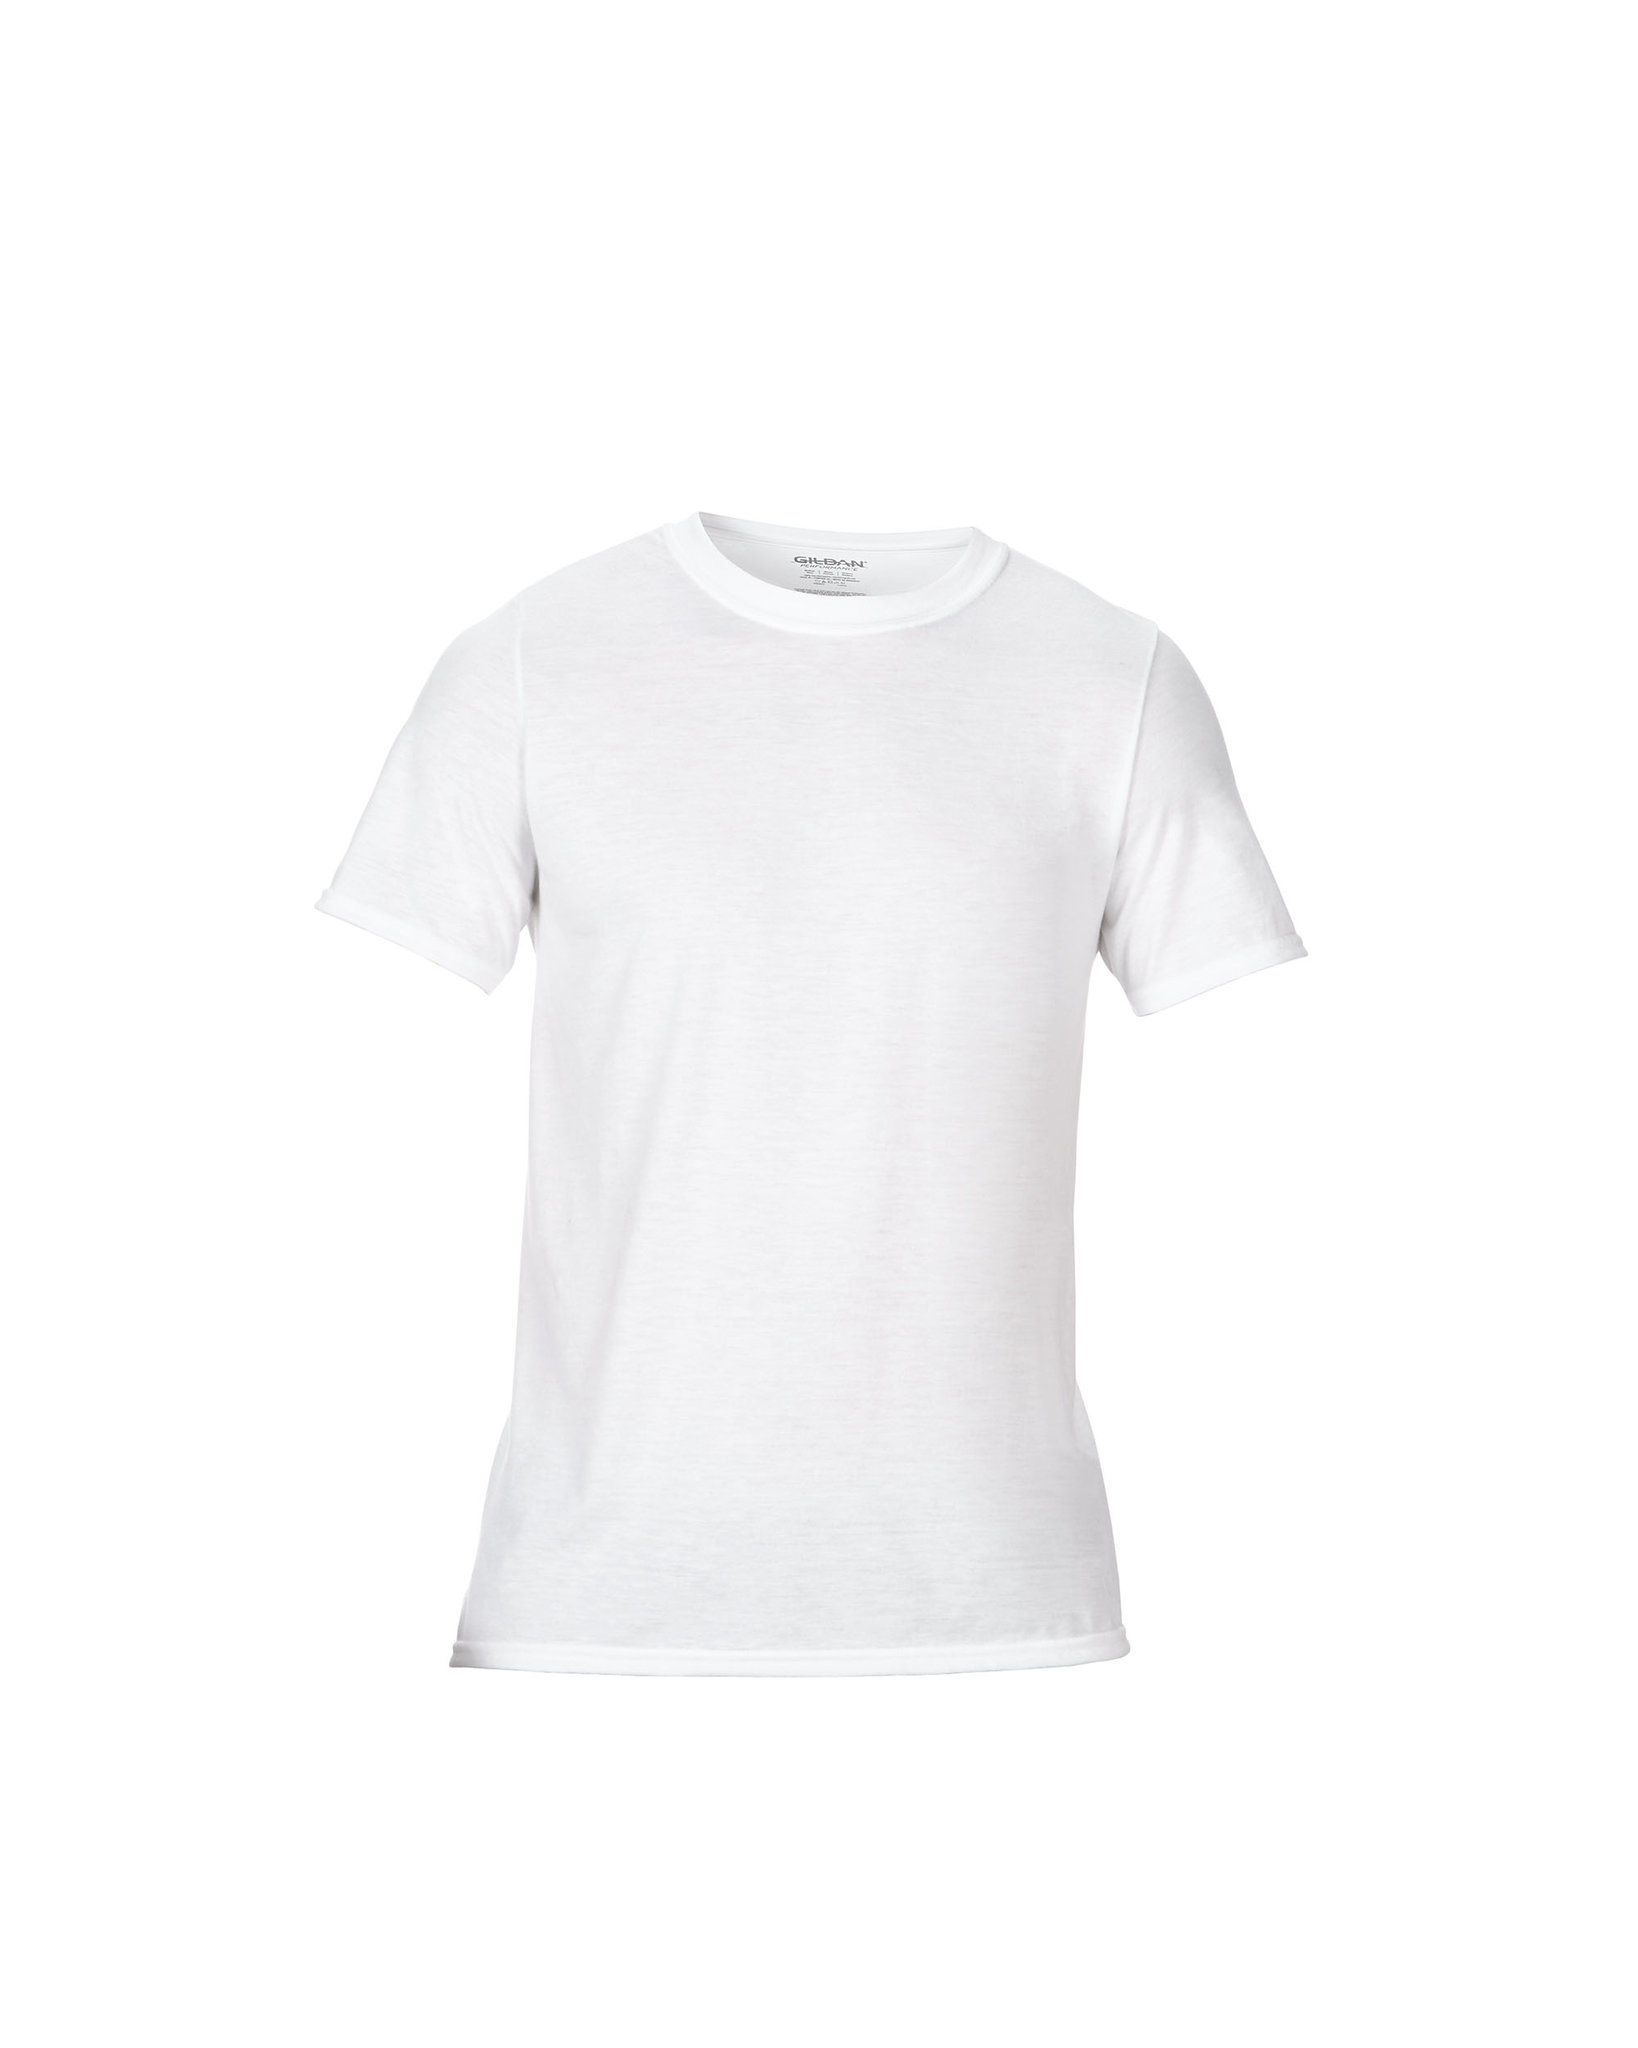 T-shirt personnalisable Sublimy - t-shirt promotionnel